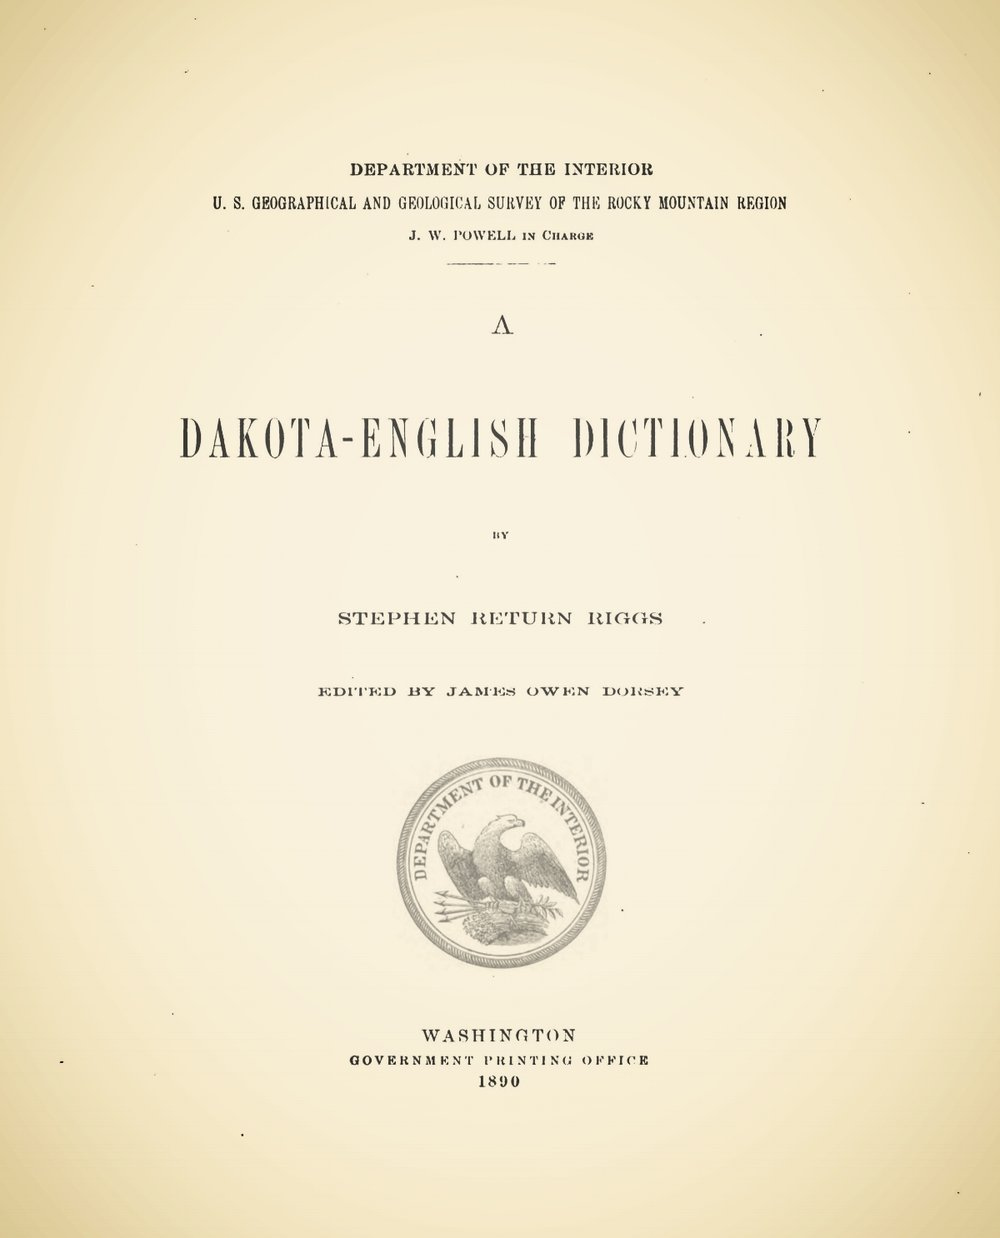 Riggs, Stephen Return, A Dakota-English Dictionary Title Page.jpg